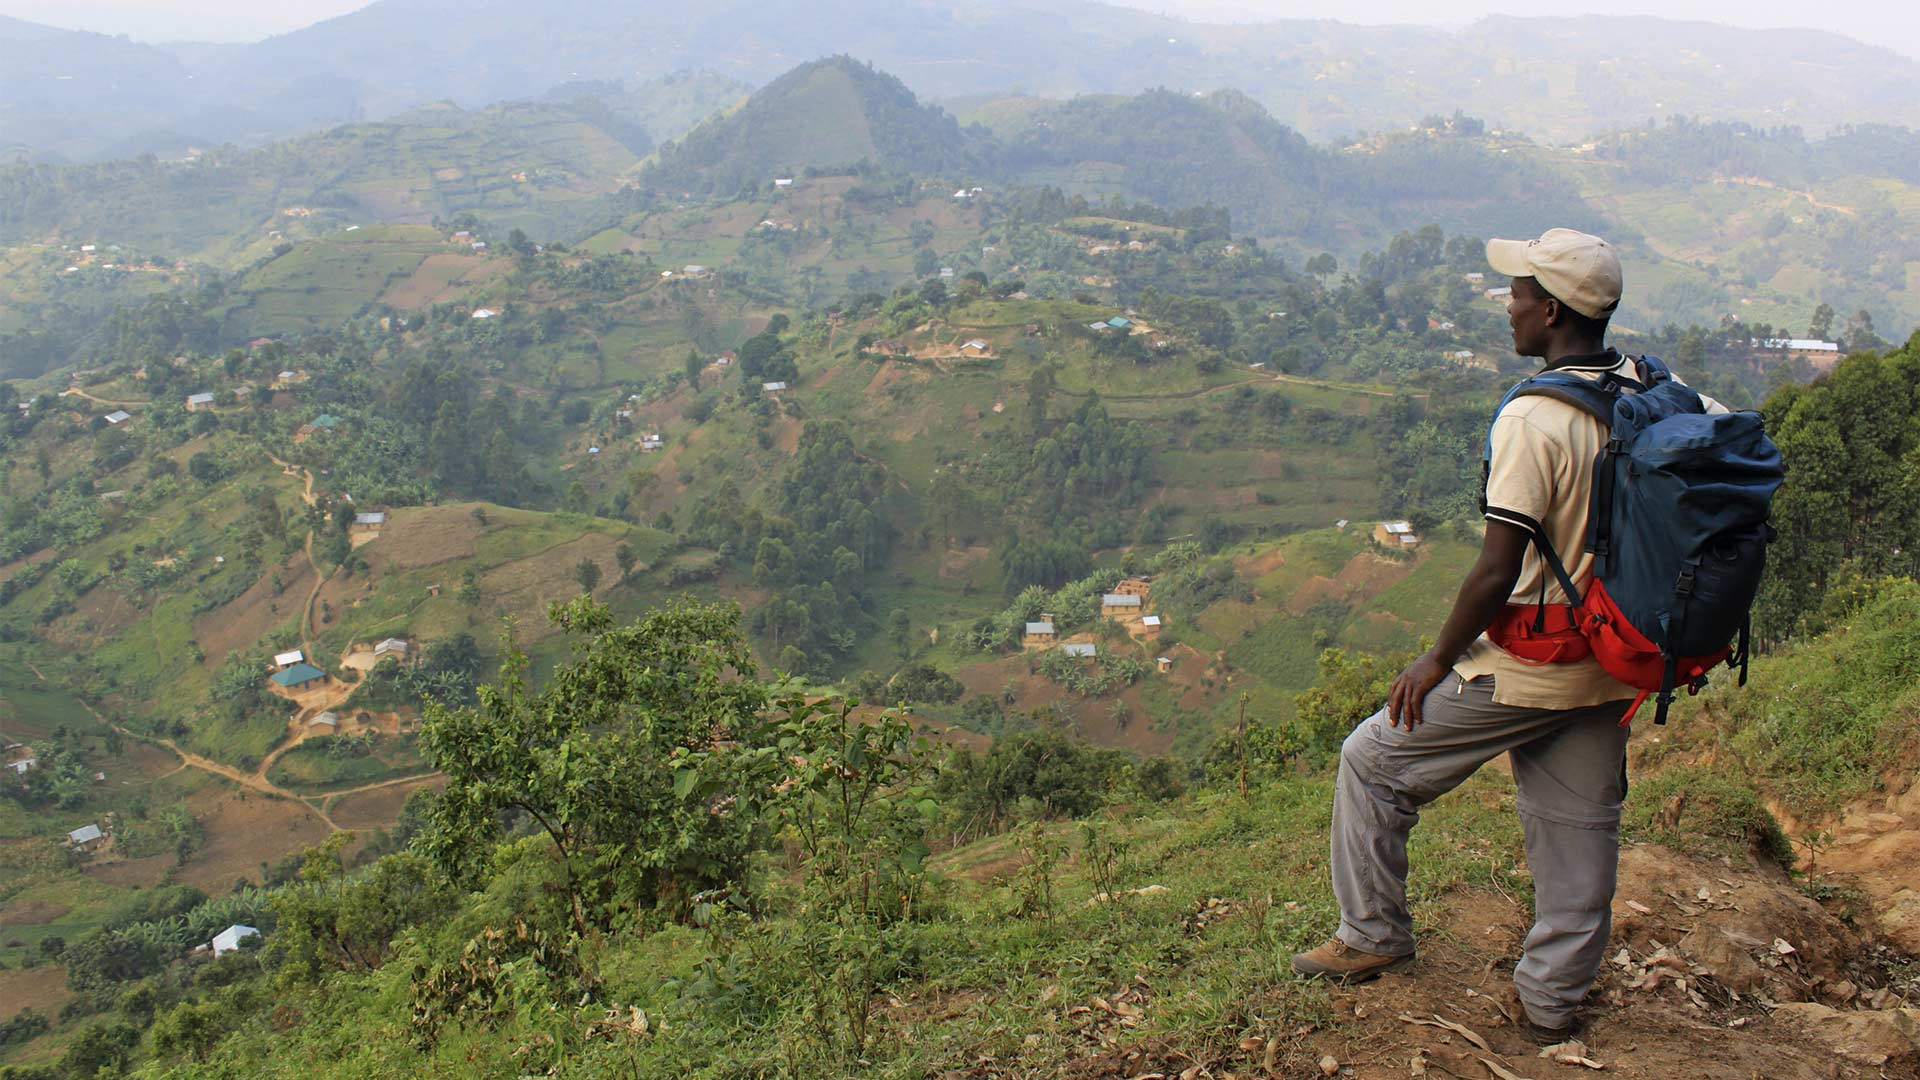 Standing on the edge of the Bwindi Impenetrable Forest in Uganda